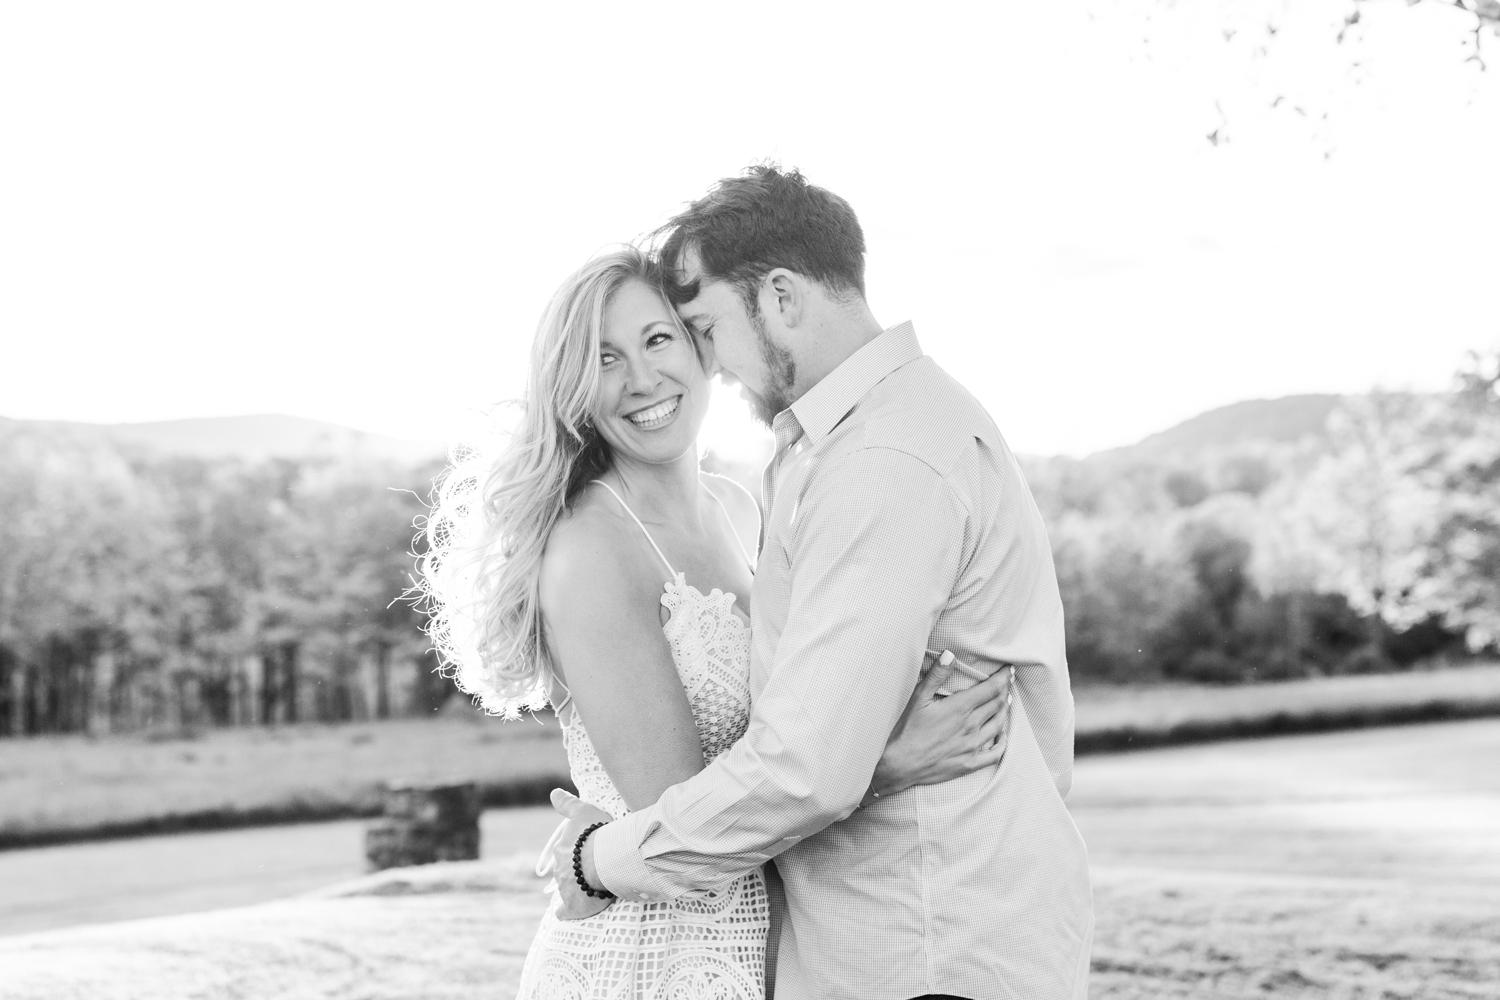 candlelight-farms-inn-engagement-session-new-milford-connecticut-wedding-photographer-shaina-lee-photography-photo